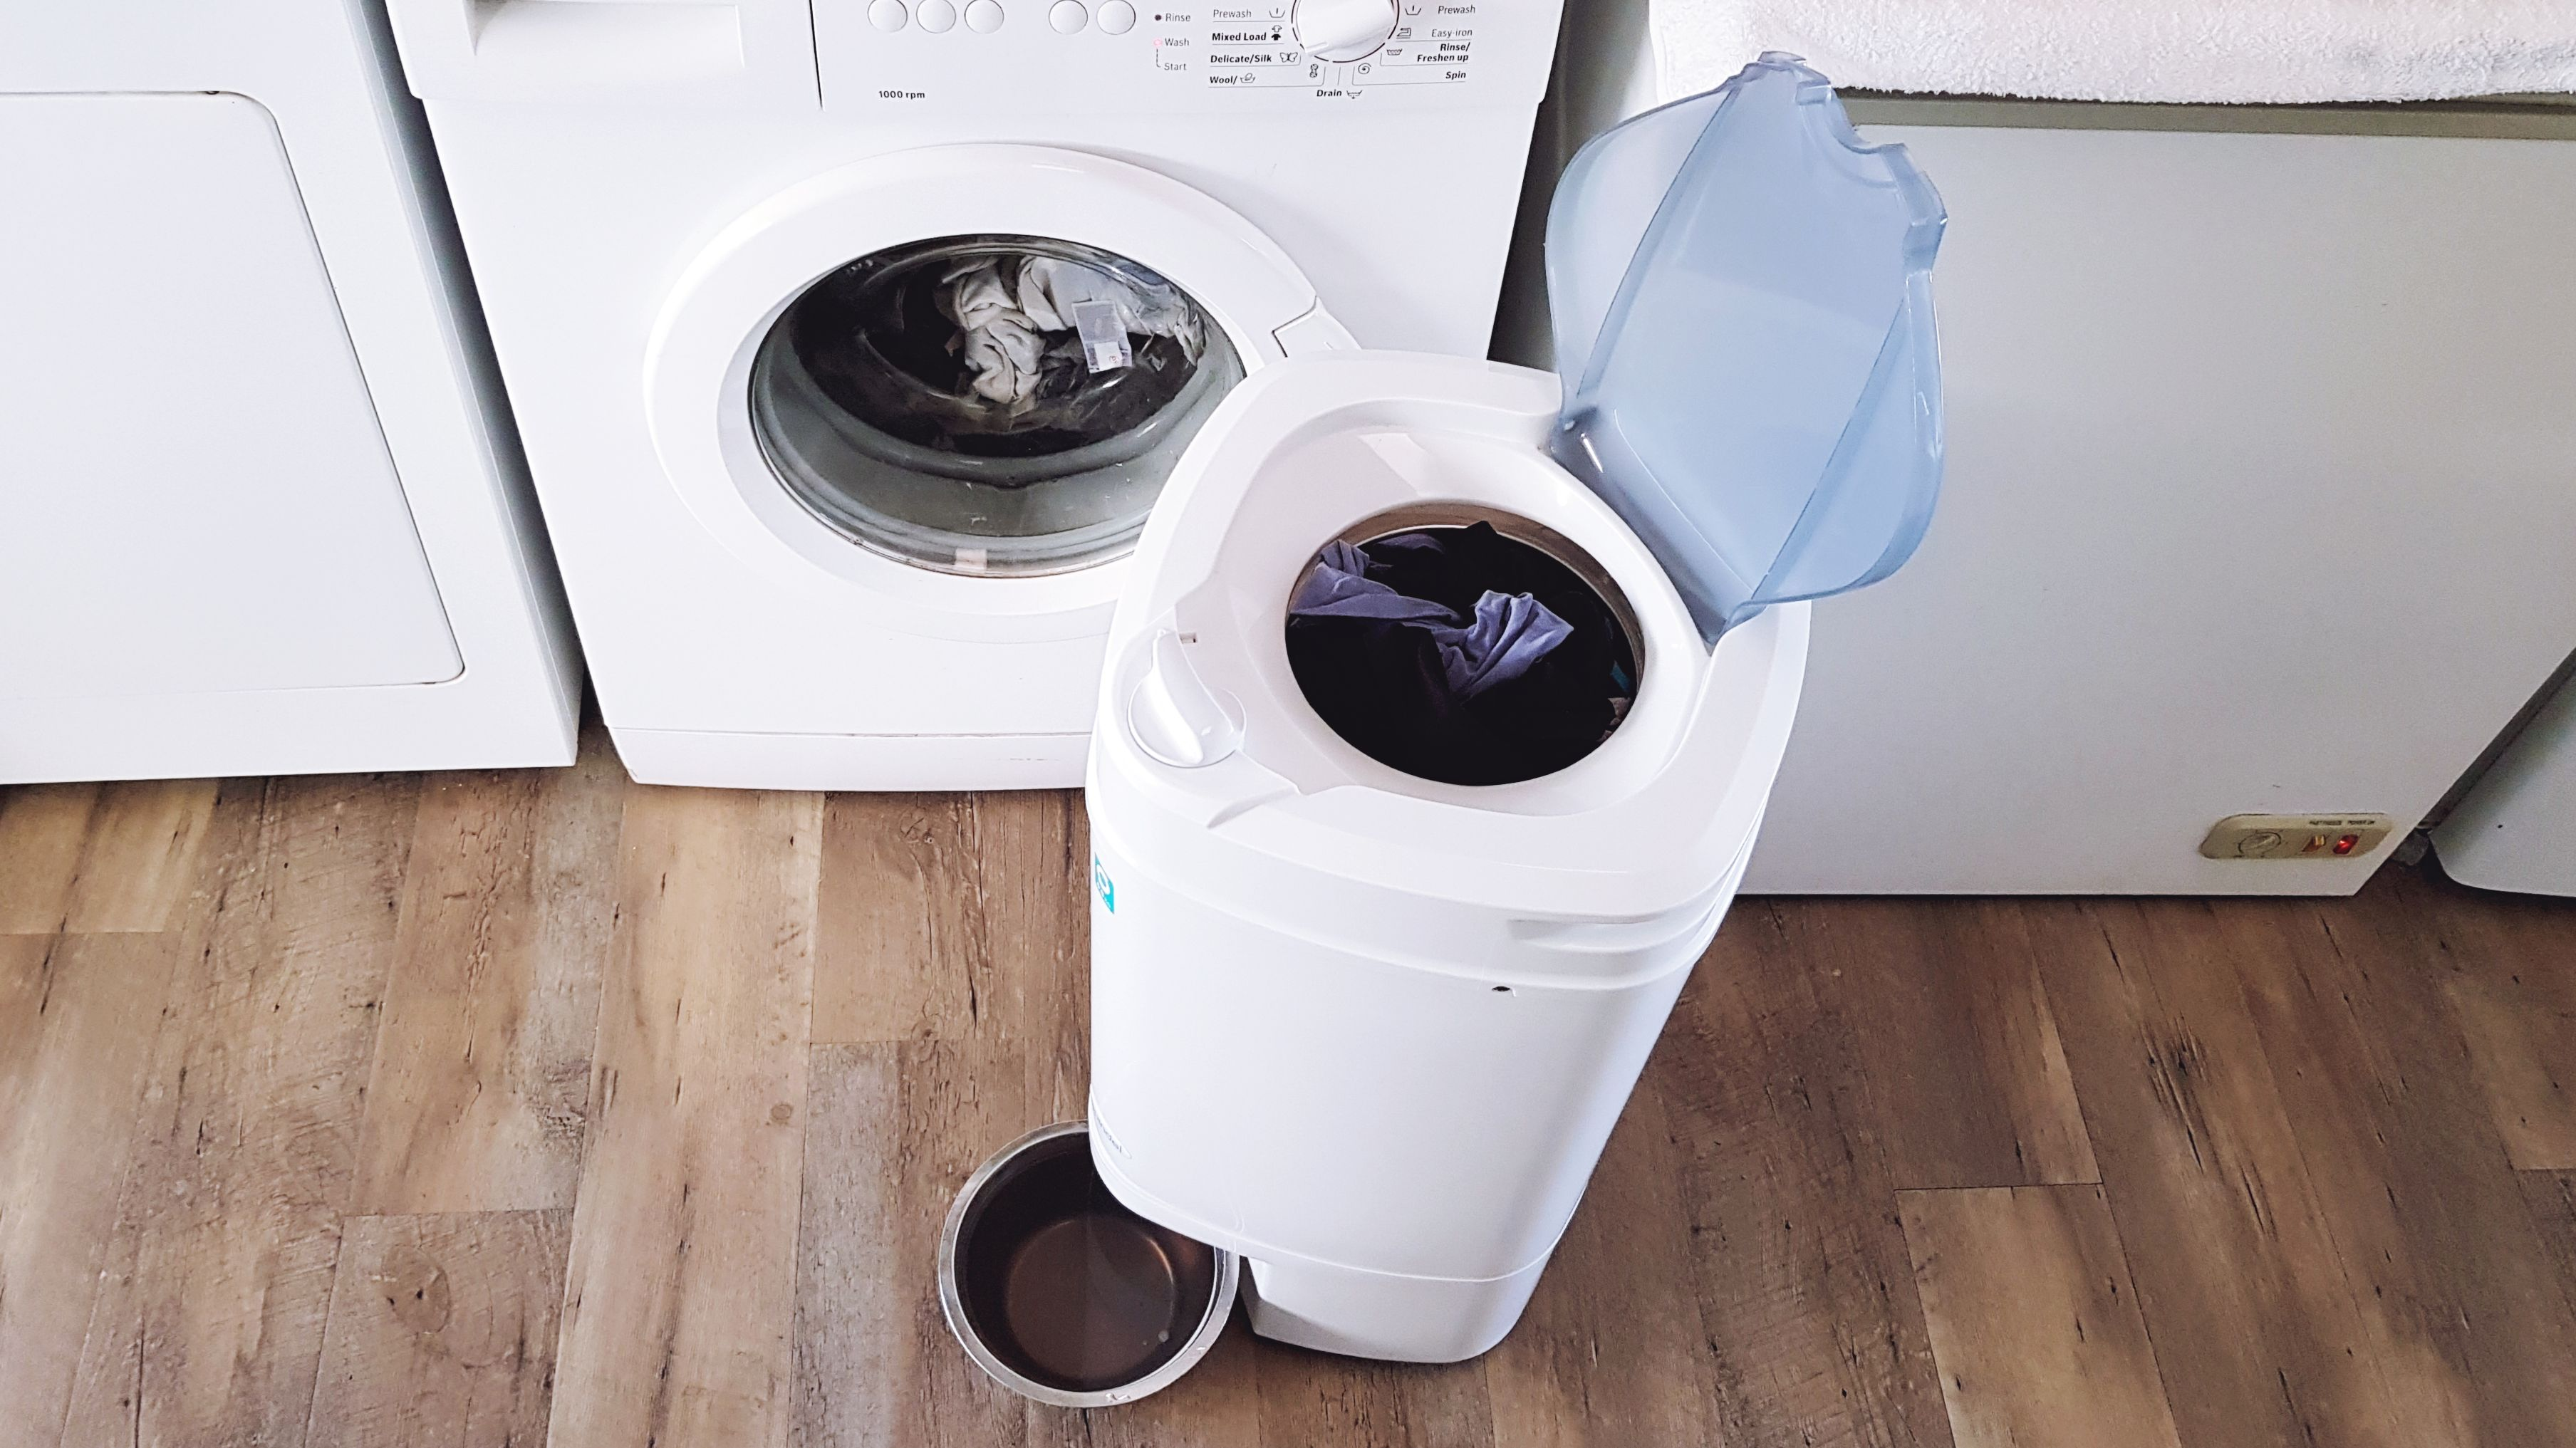 The Little Laundry Appliance that Could – Meet my Spindel